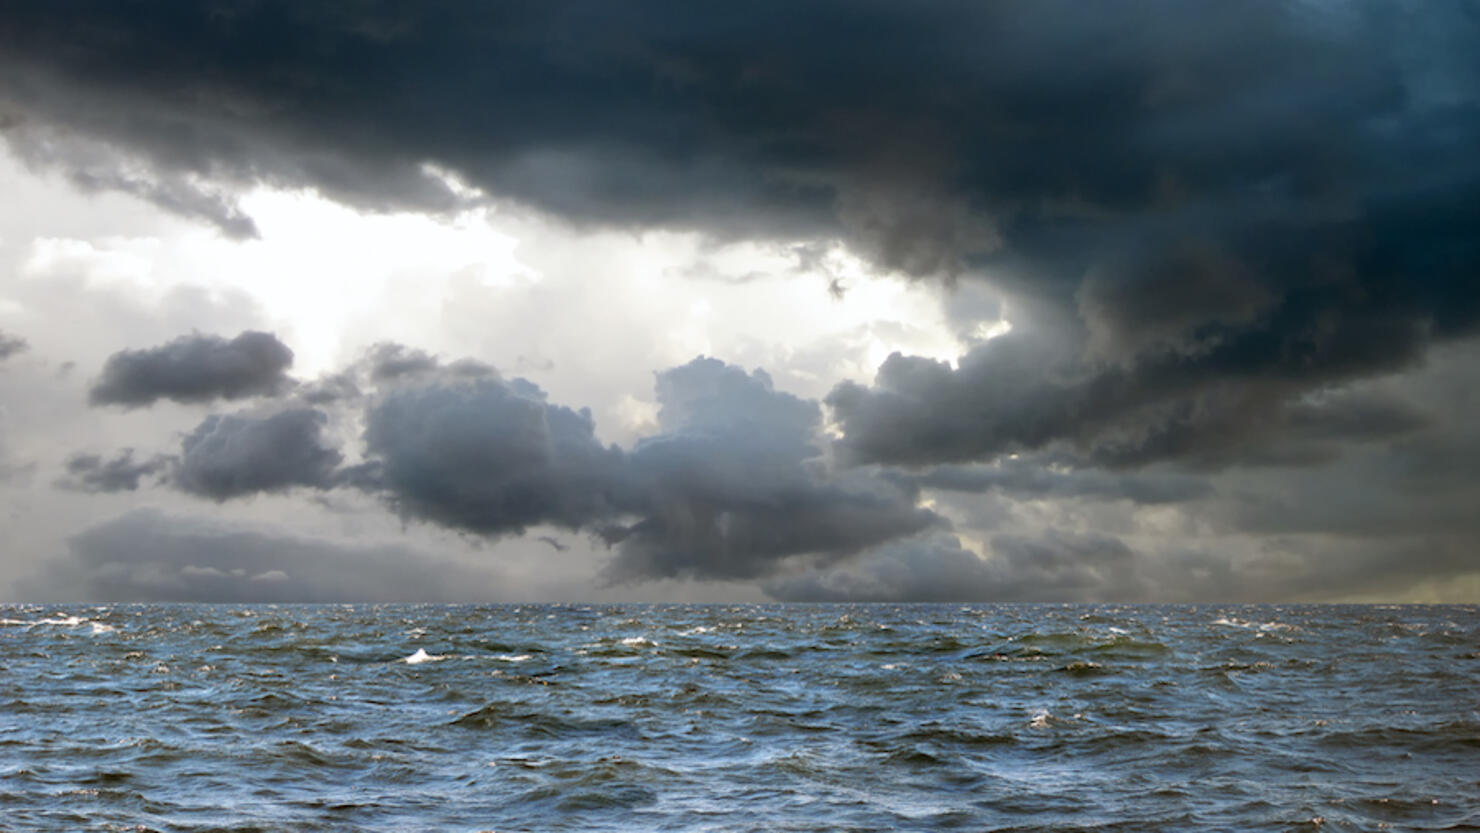 Tropical storm and spooky seascape